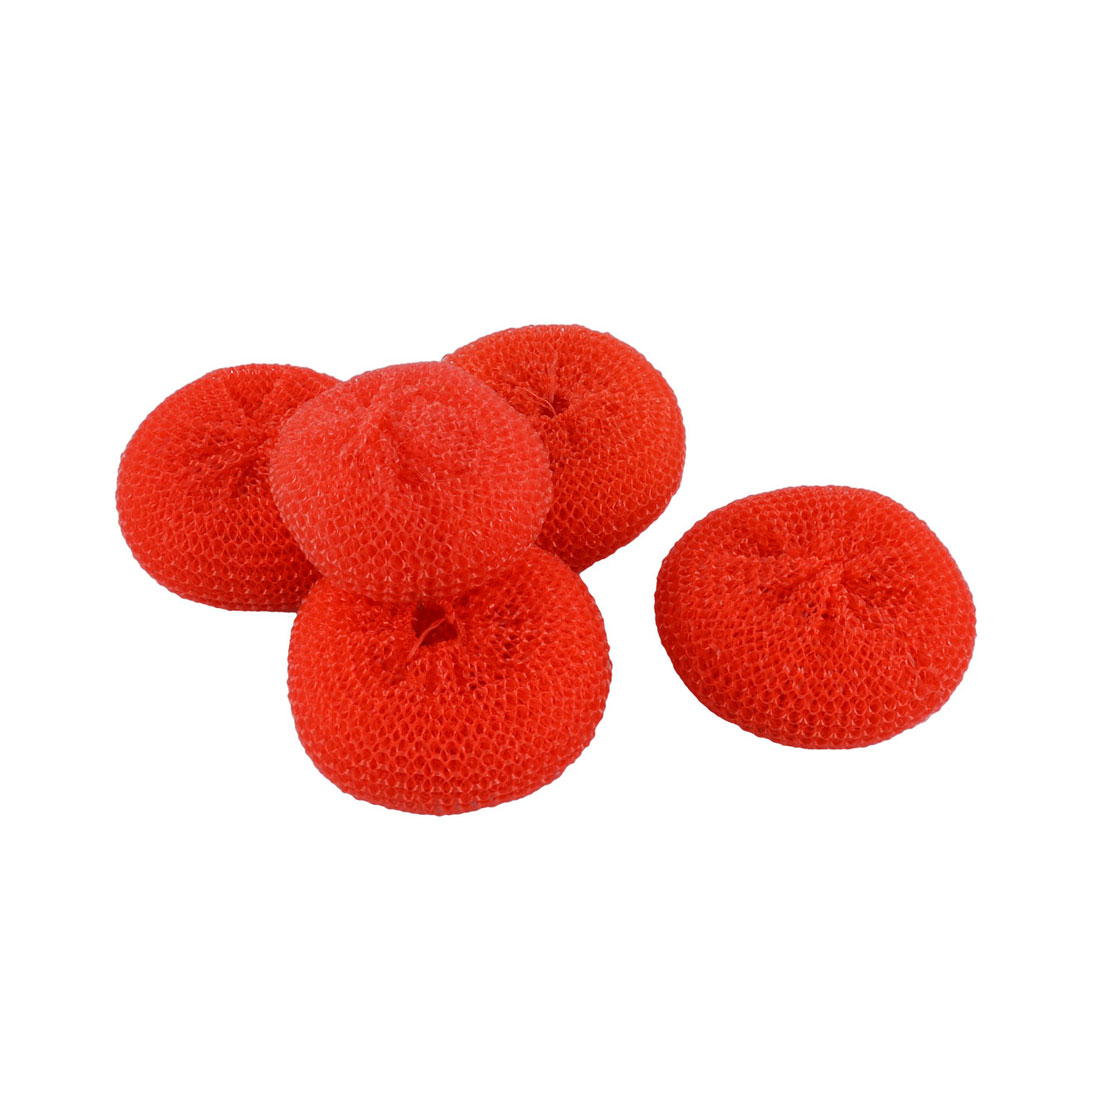 Kitchen Dish Pot Pan Plastic Mesh Scouring Washing Cleaning Scrubber Pad Red 5pcs